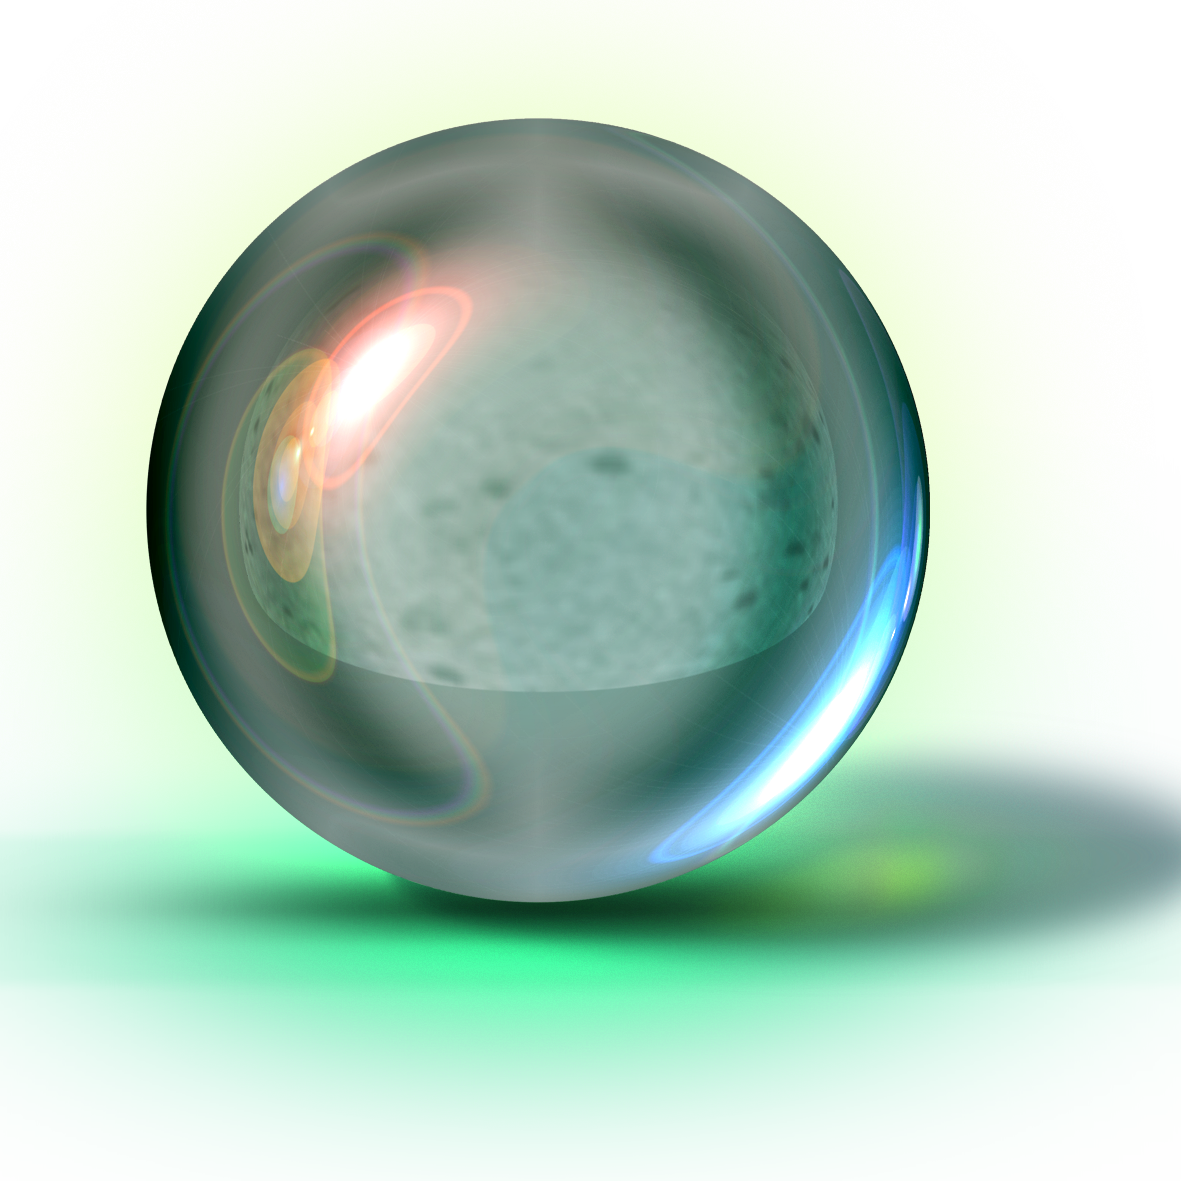 Glass glare png. Transparency and translucency ball